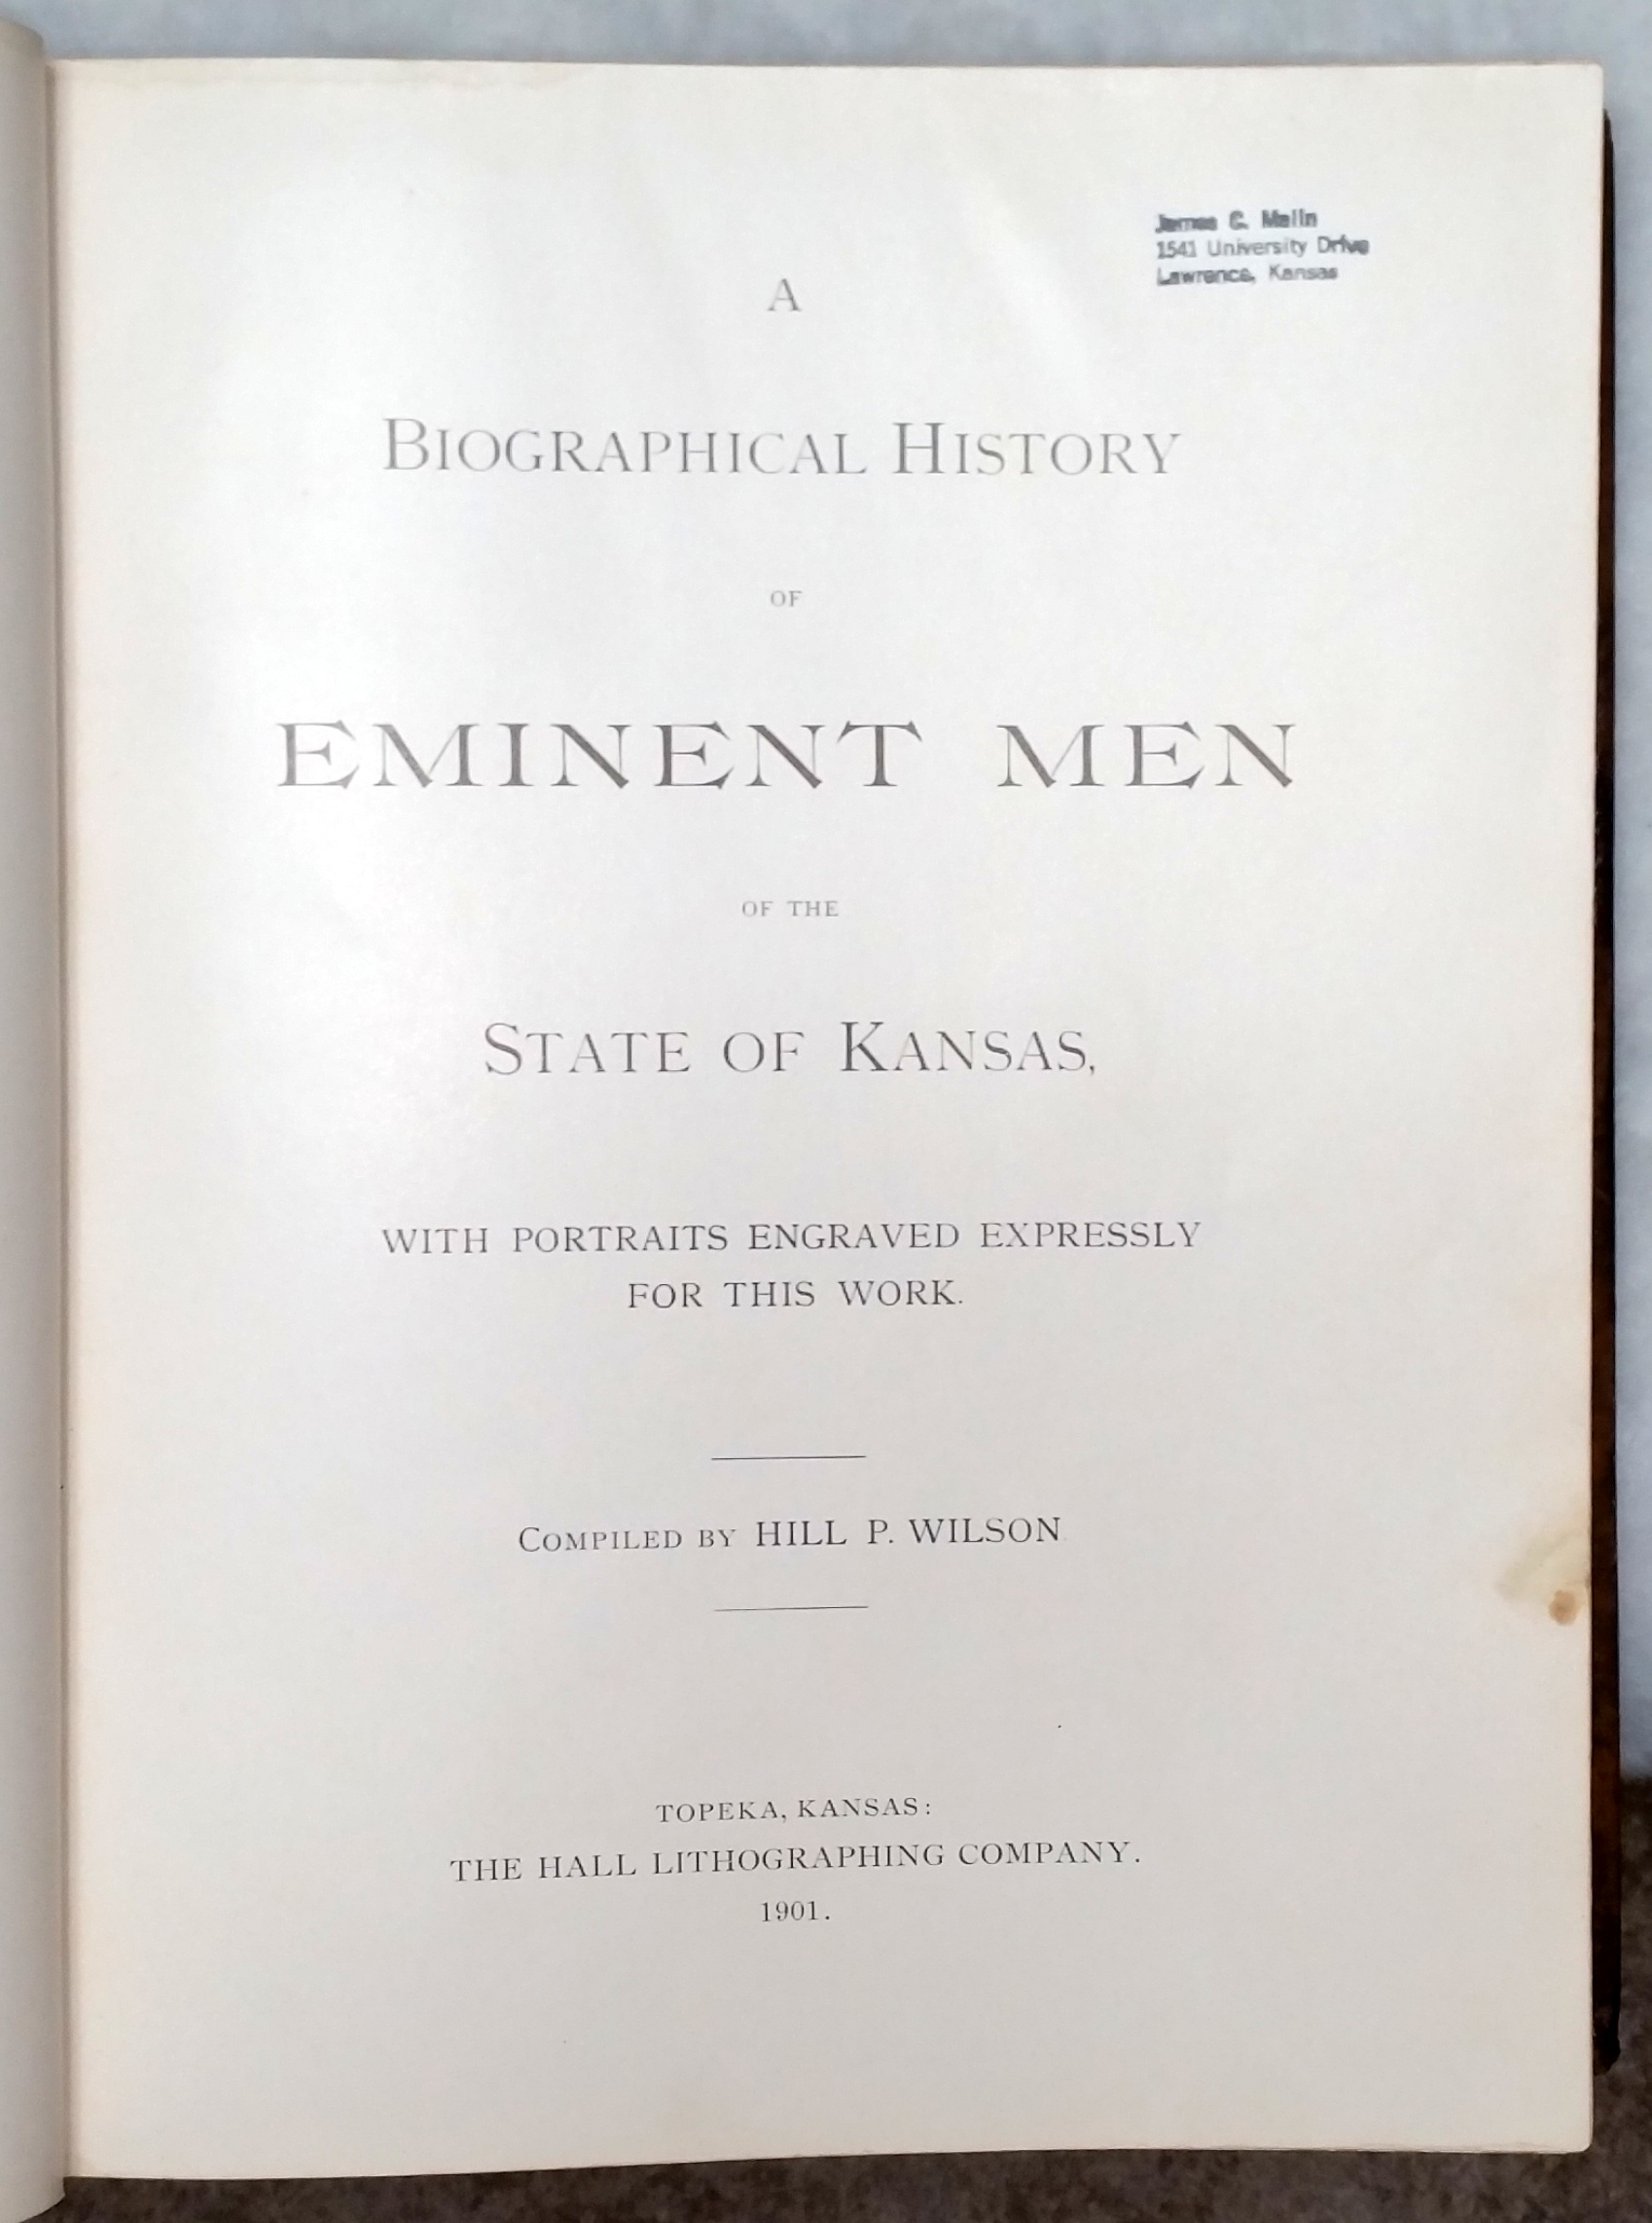 Image for A Biographical History of Eminent Men of the State of Kansas with Portraits Engraved Expressly for This Work